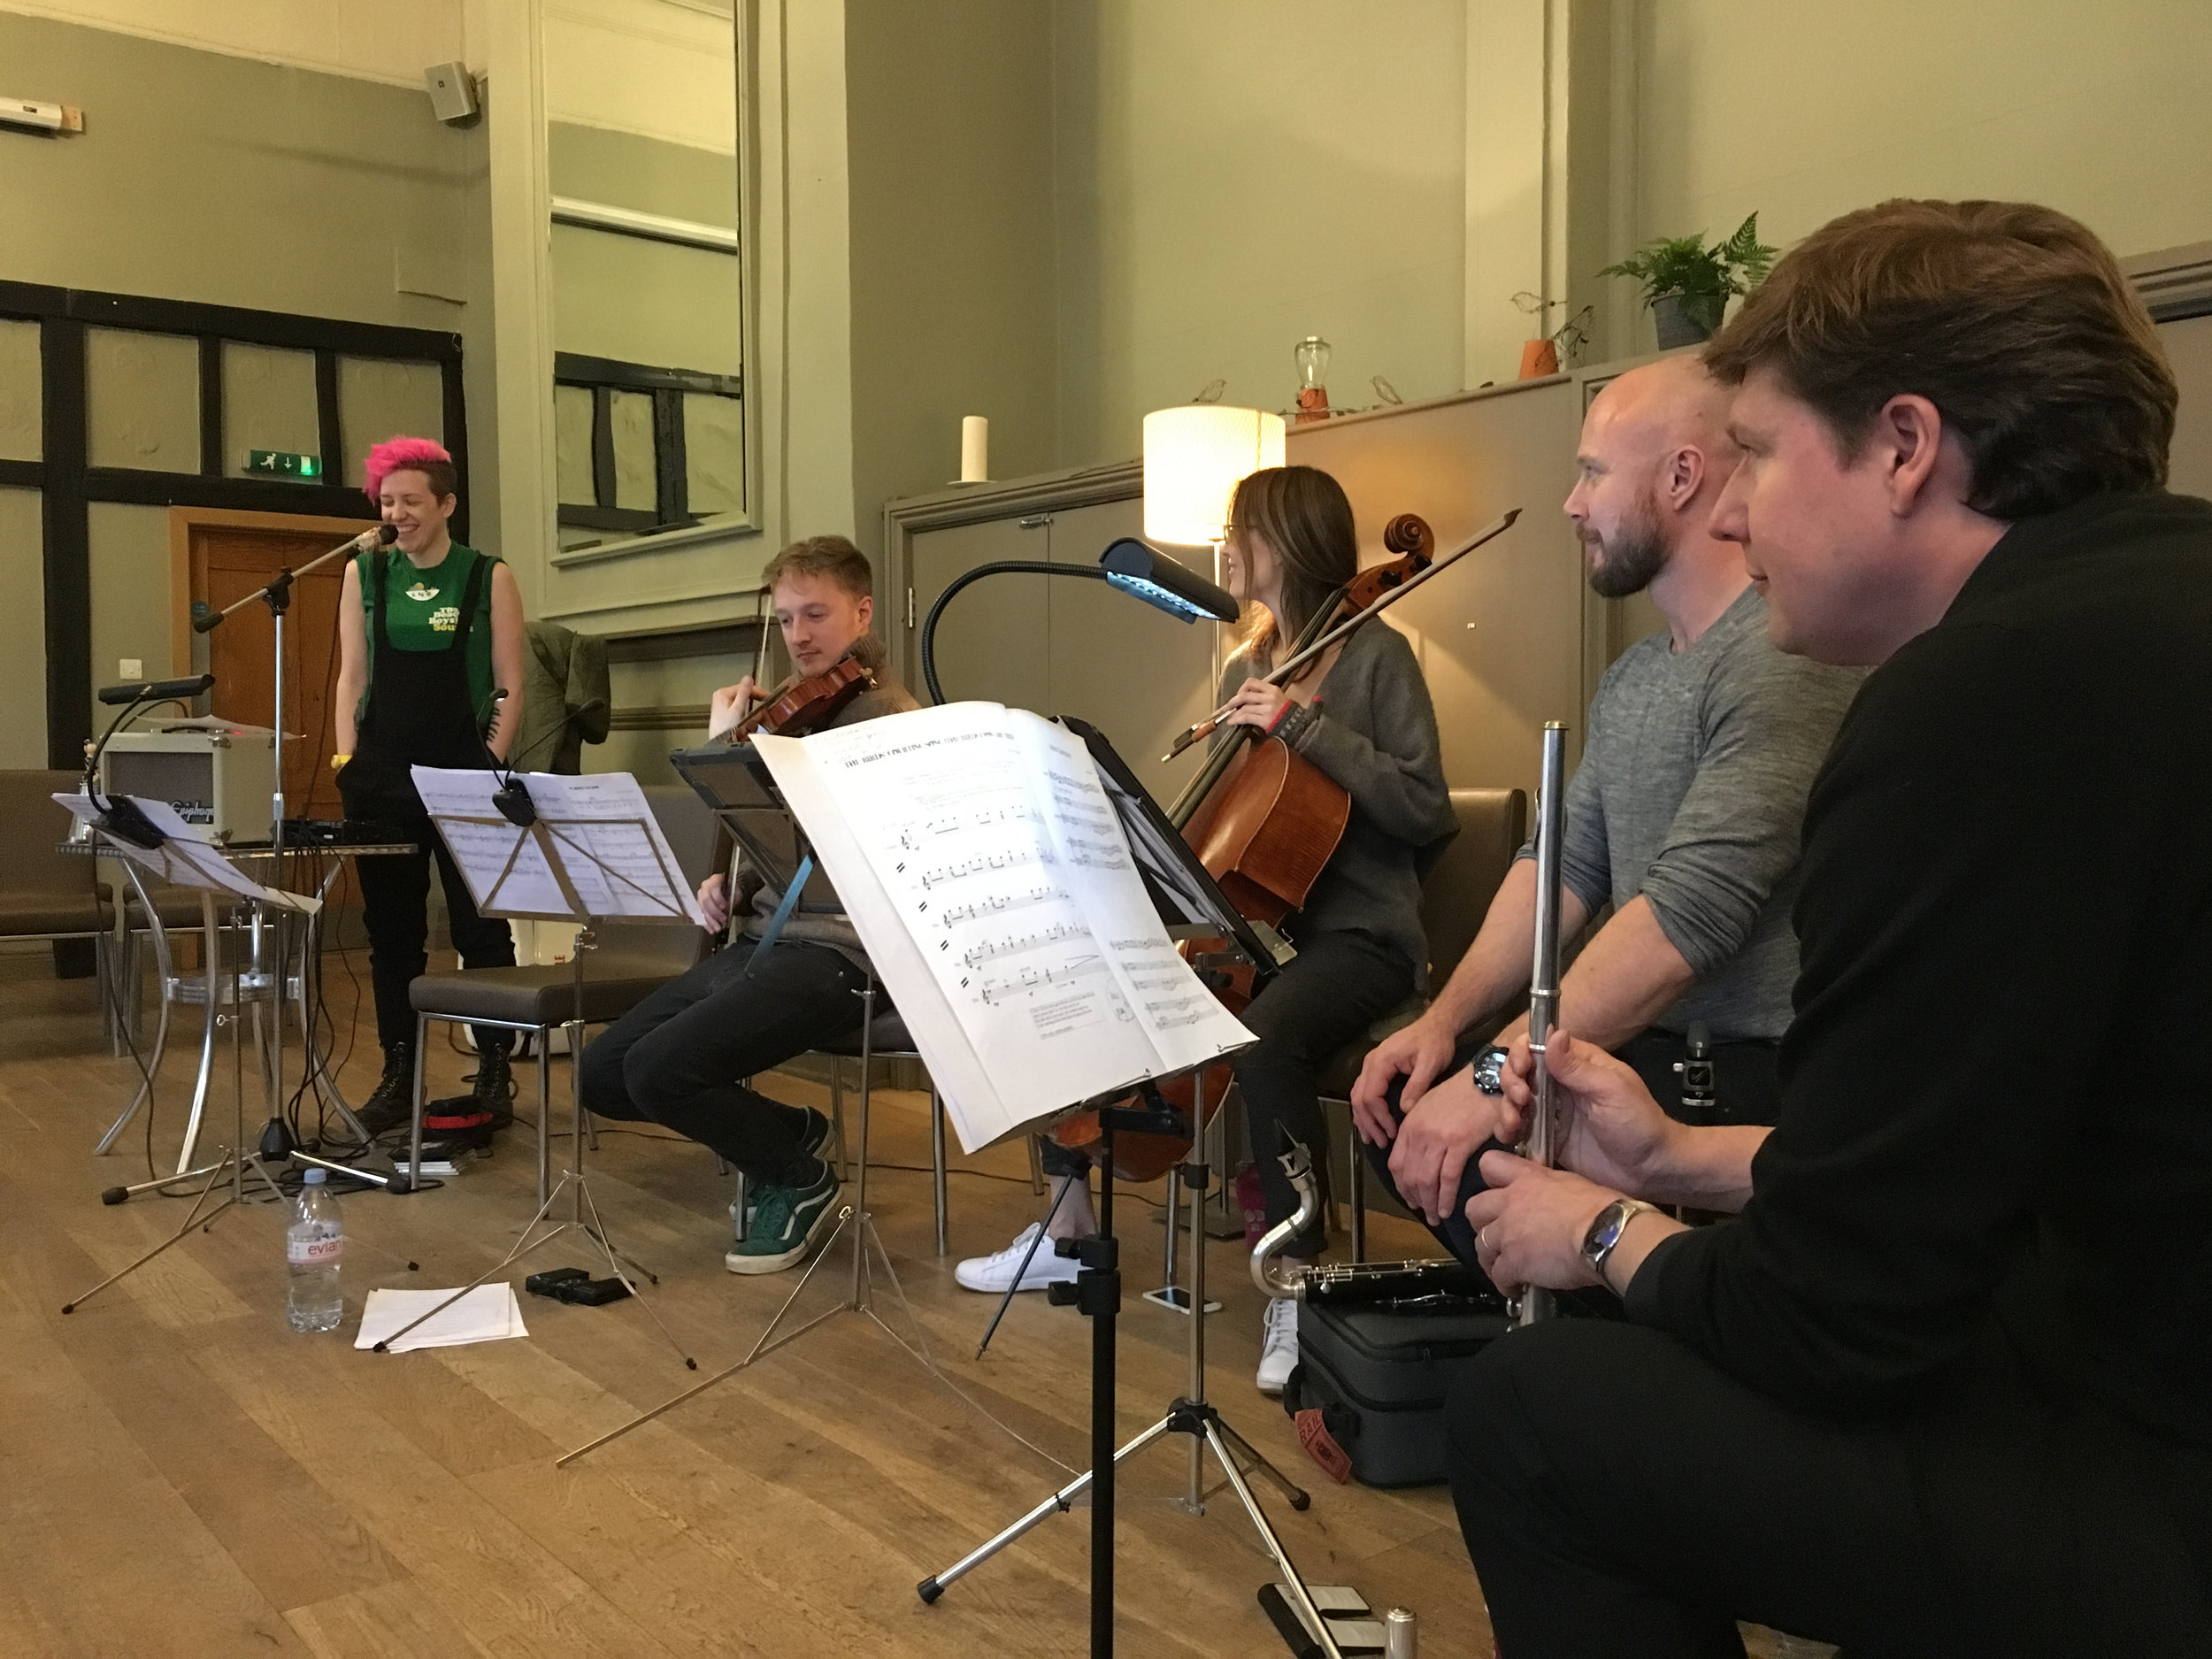 Kerry Andrew, Daniel Pioro, Clare O'Connell, Stuart King & Julian Sperry rehearsing Birdsong at the Kings Arms Berkhamsted